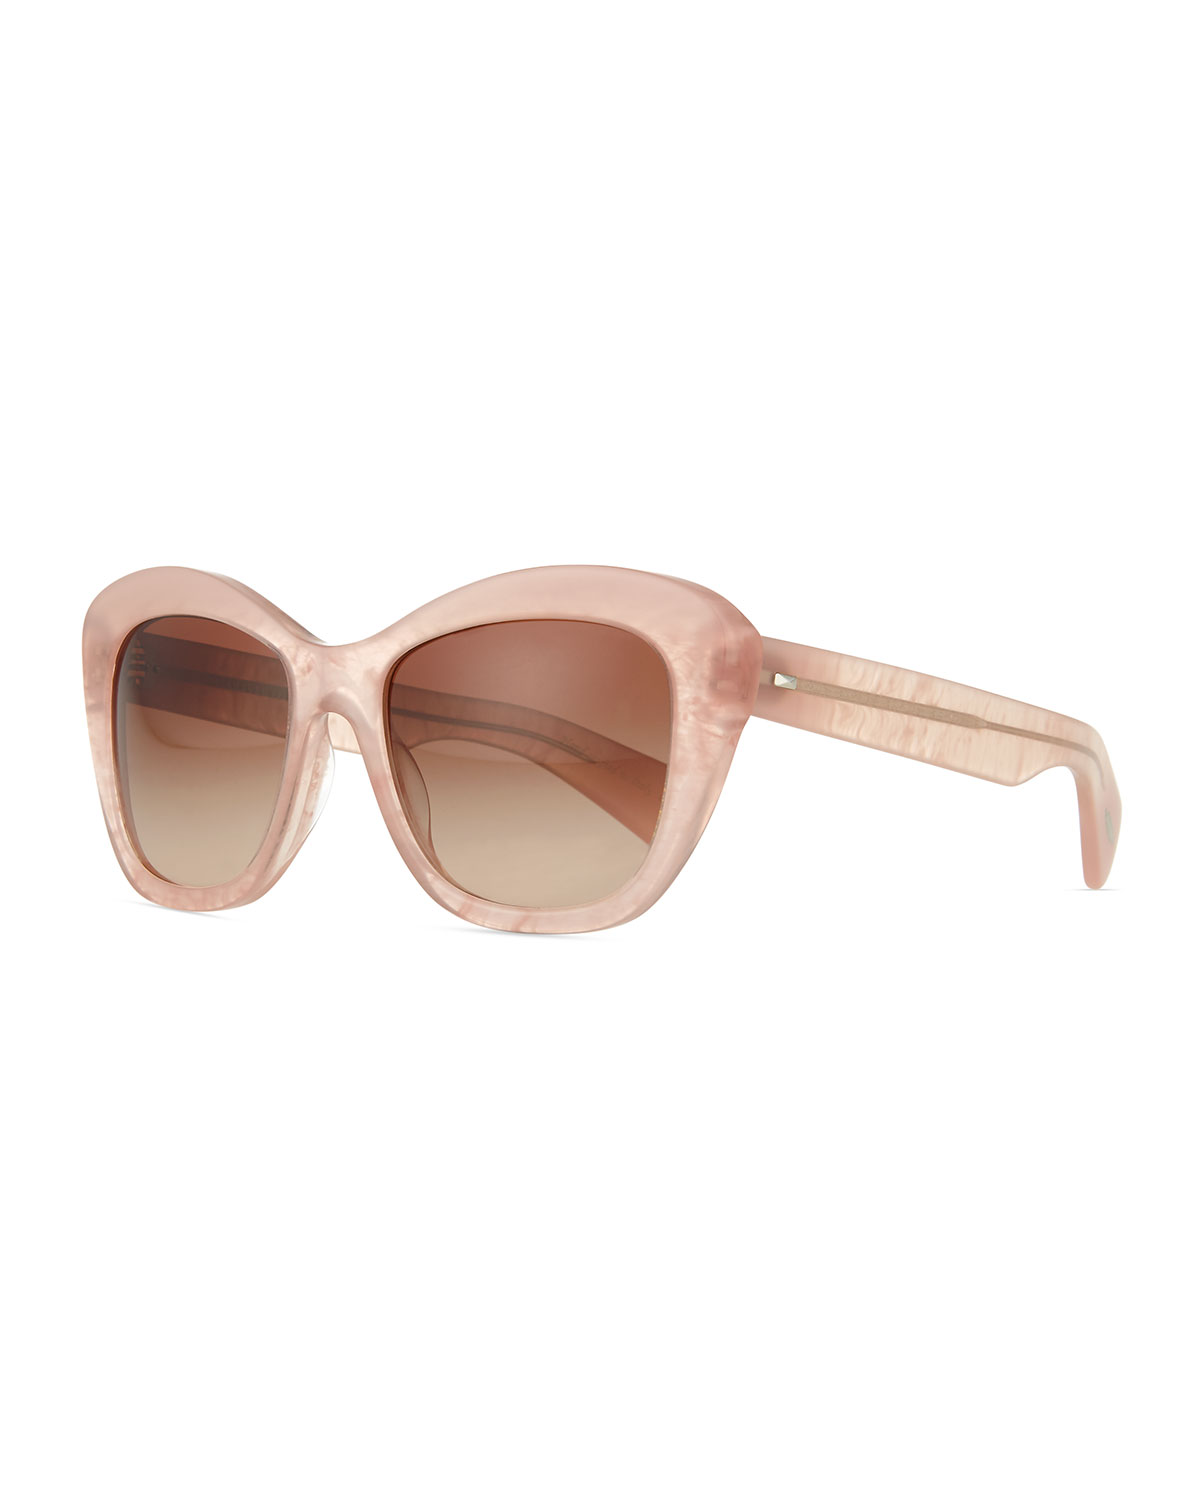 Oliver Peoples Emmy Universal Fit Cat-Eye Sunglasses, Pink